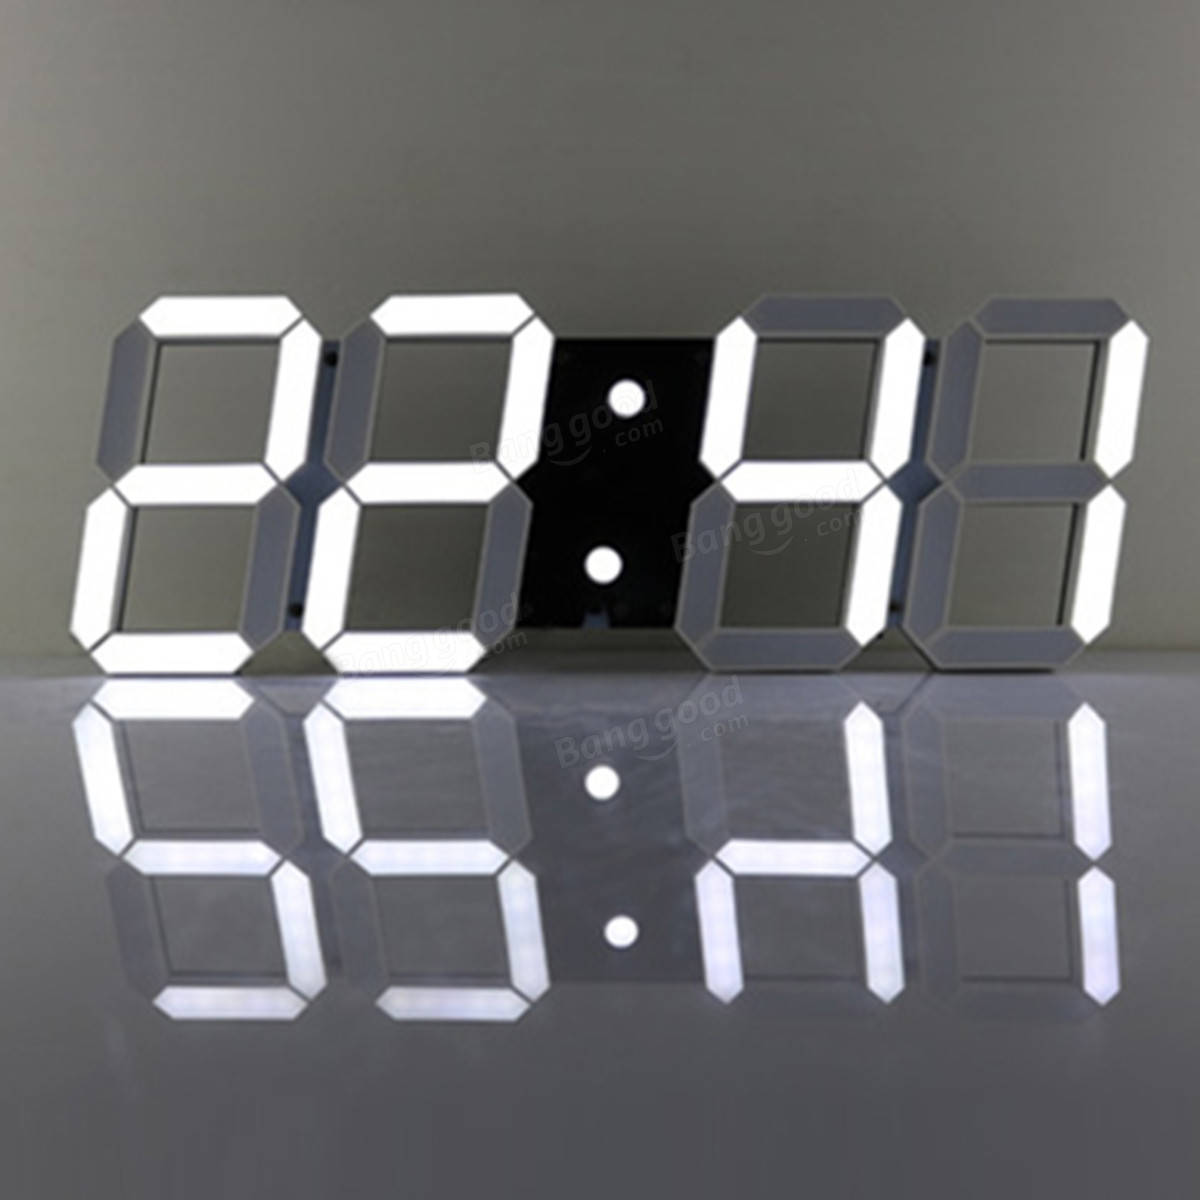 3d acrylic white large digital led skeleton wall clock timer 2412 3d acrylic white large digital led skeleton wall clock timer 2412 hour display amipublicfo Images